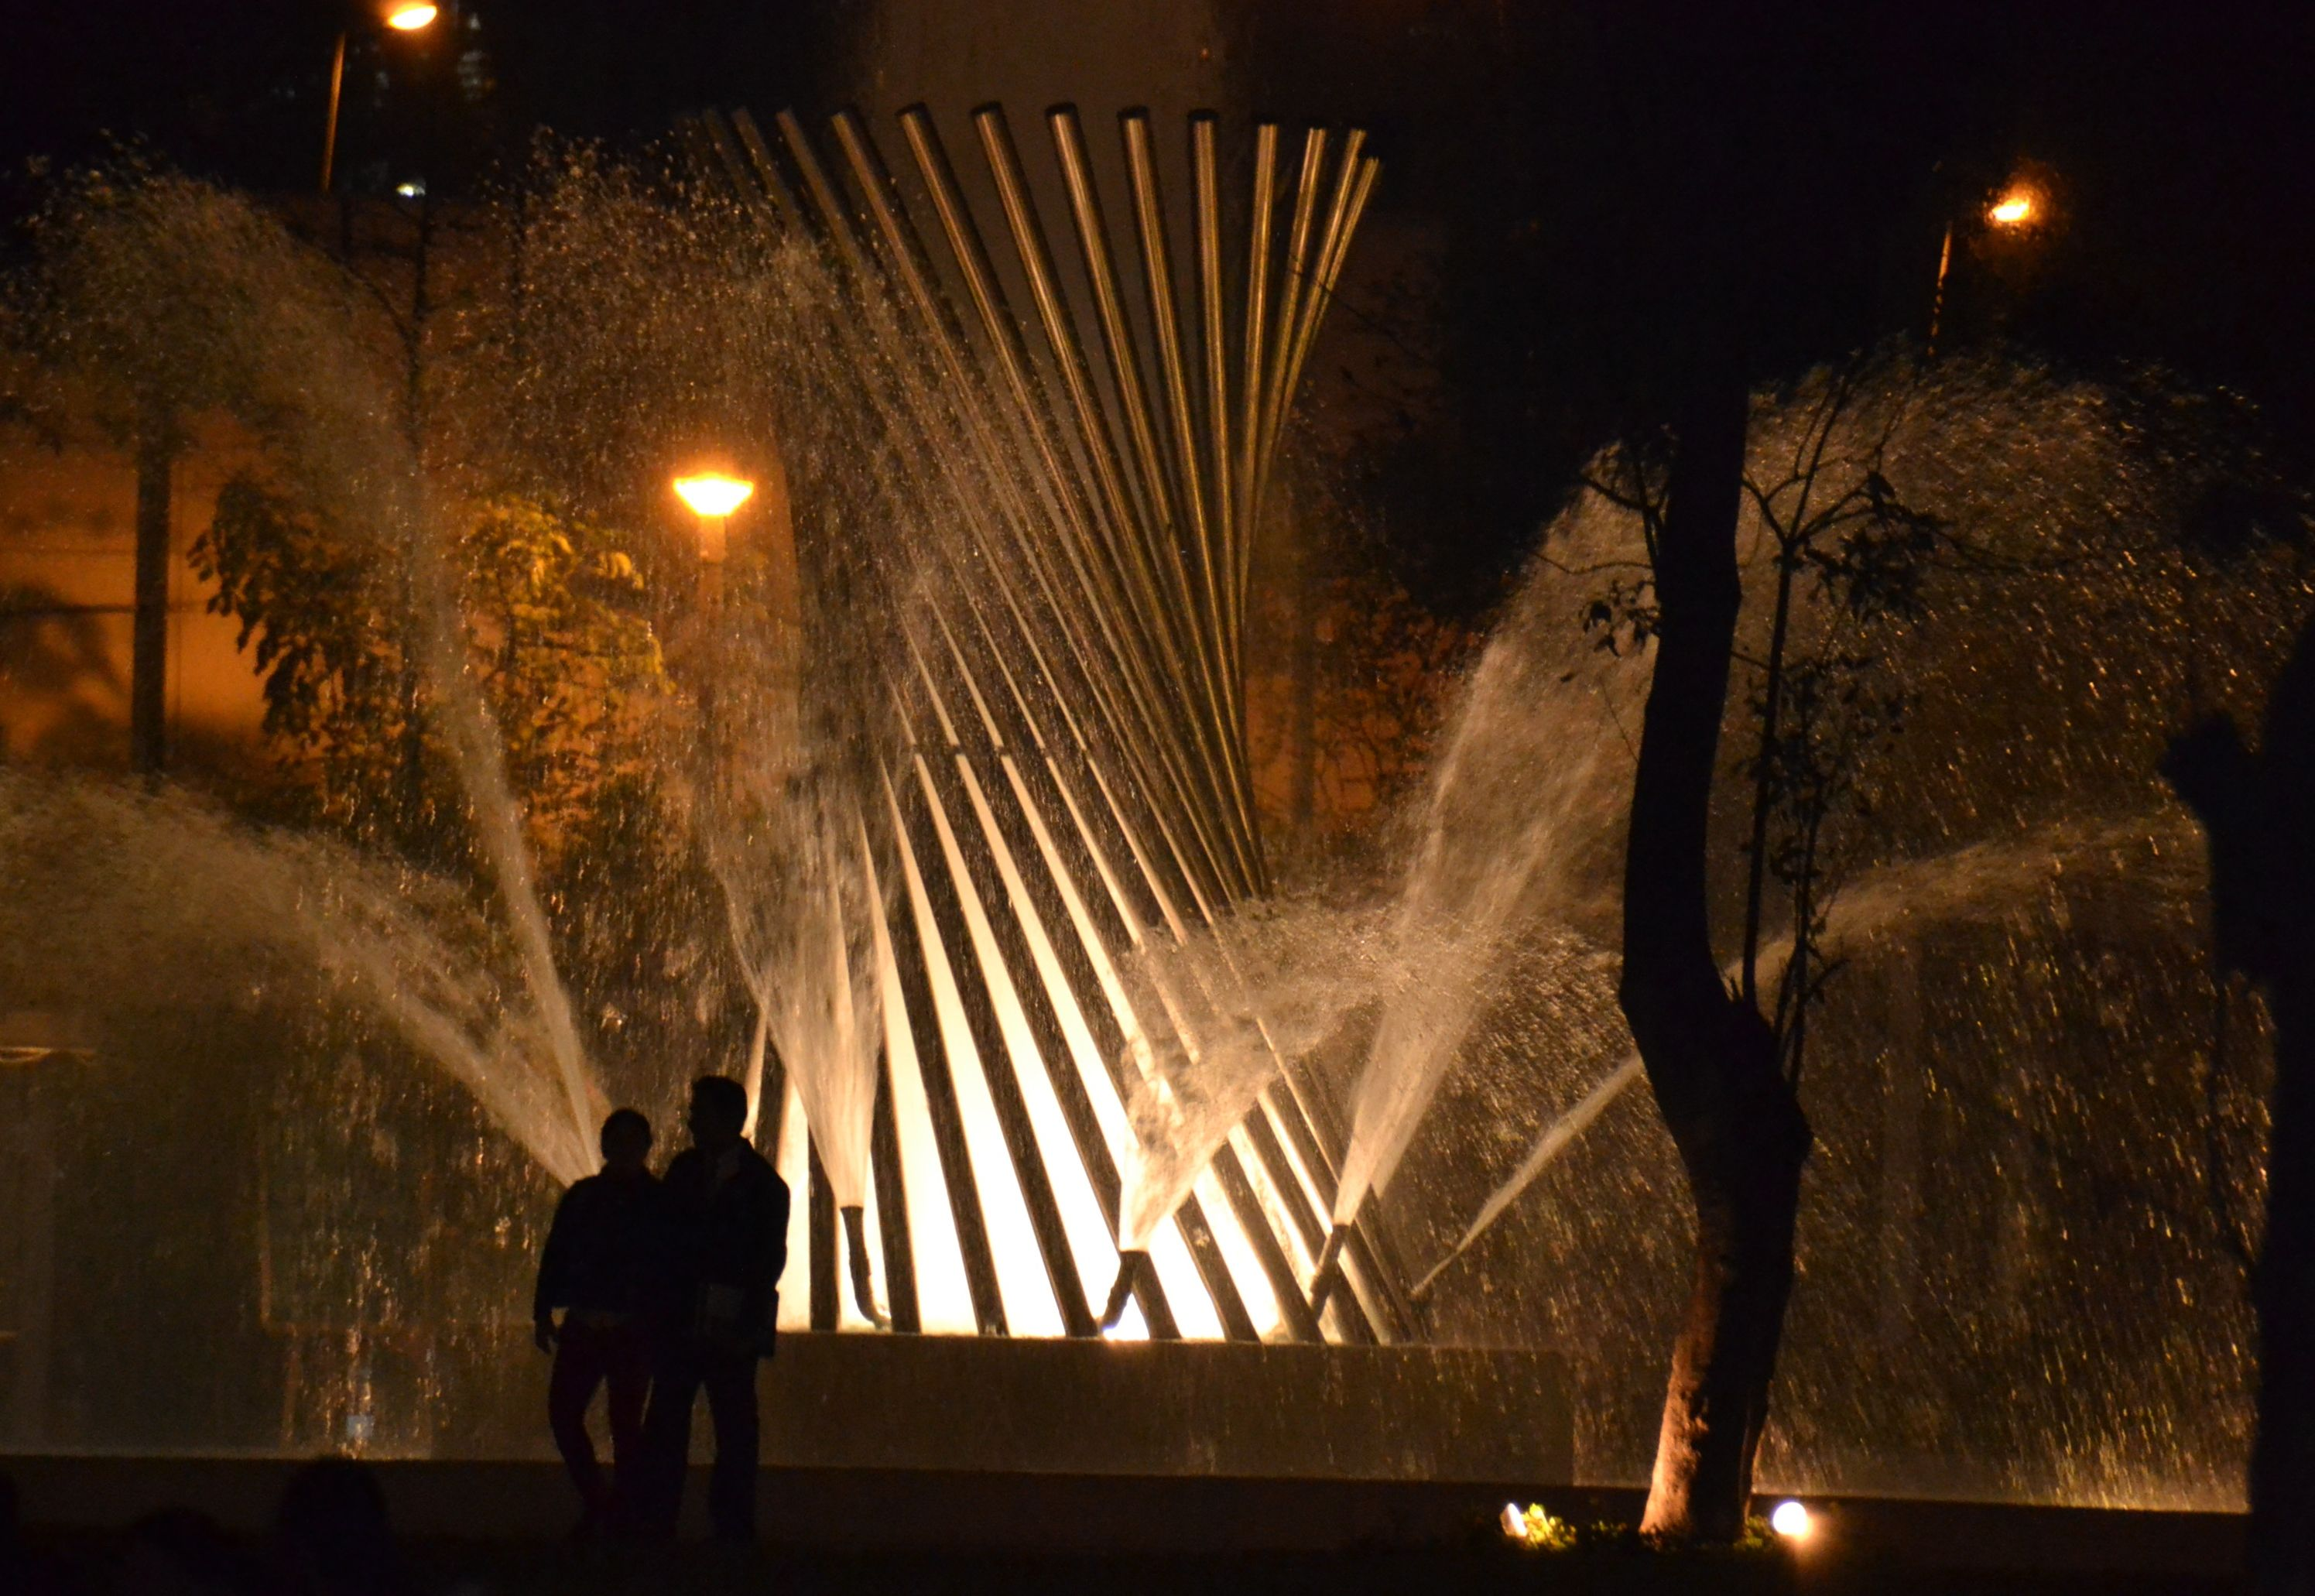 Another fountain display in the Magic Circuit of Water in Lima, Peru